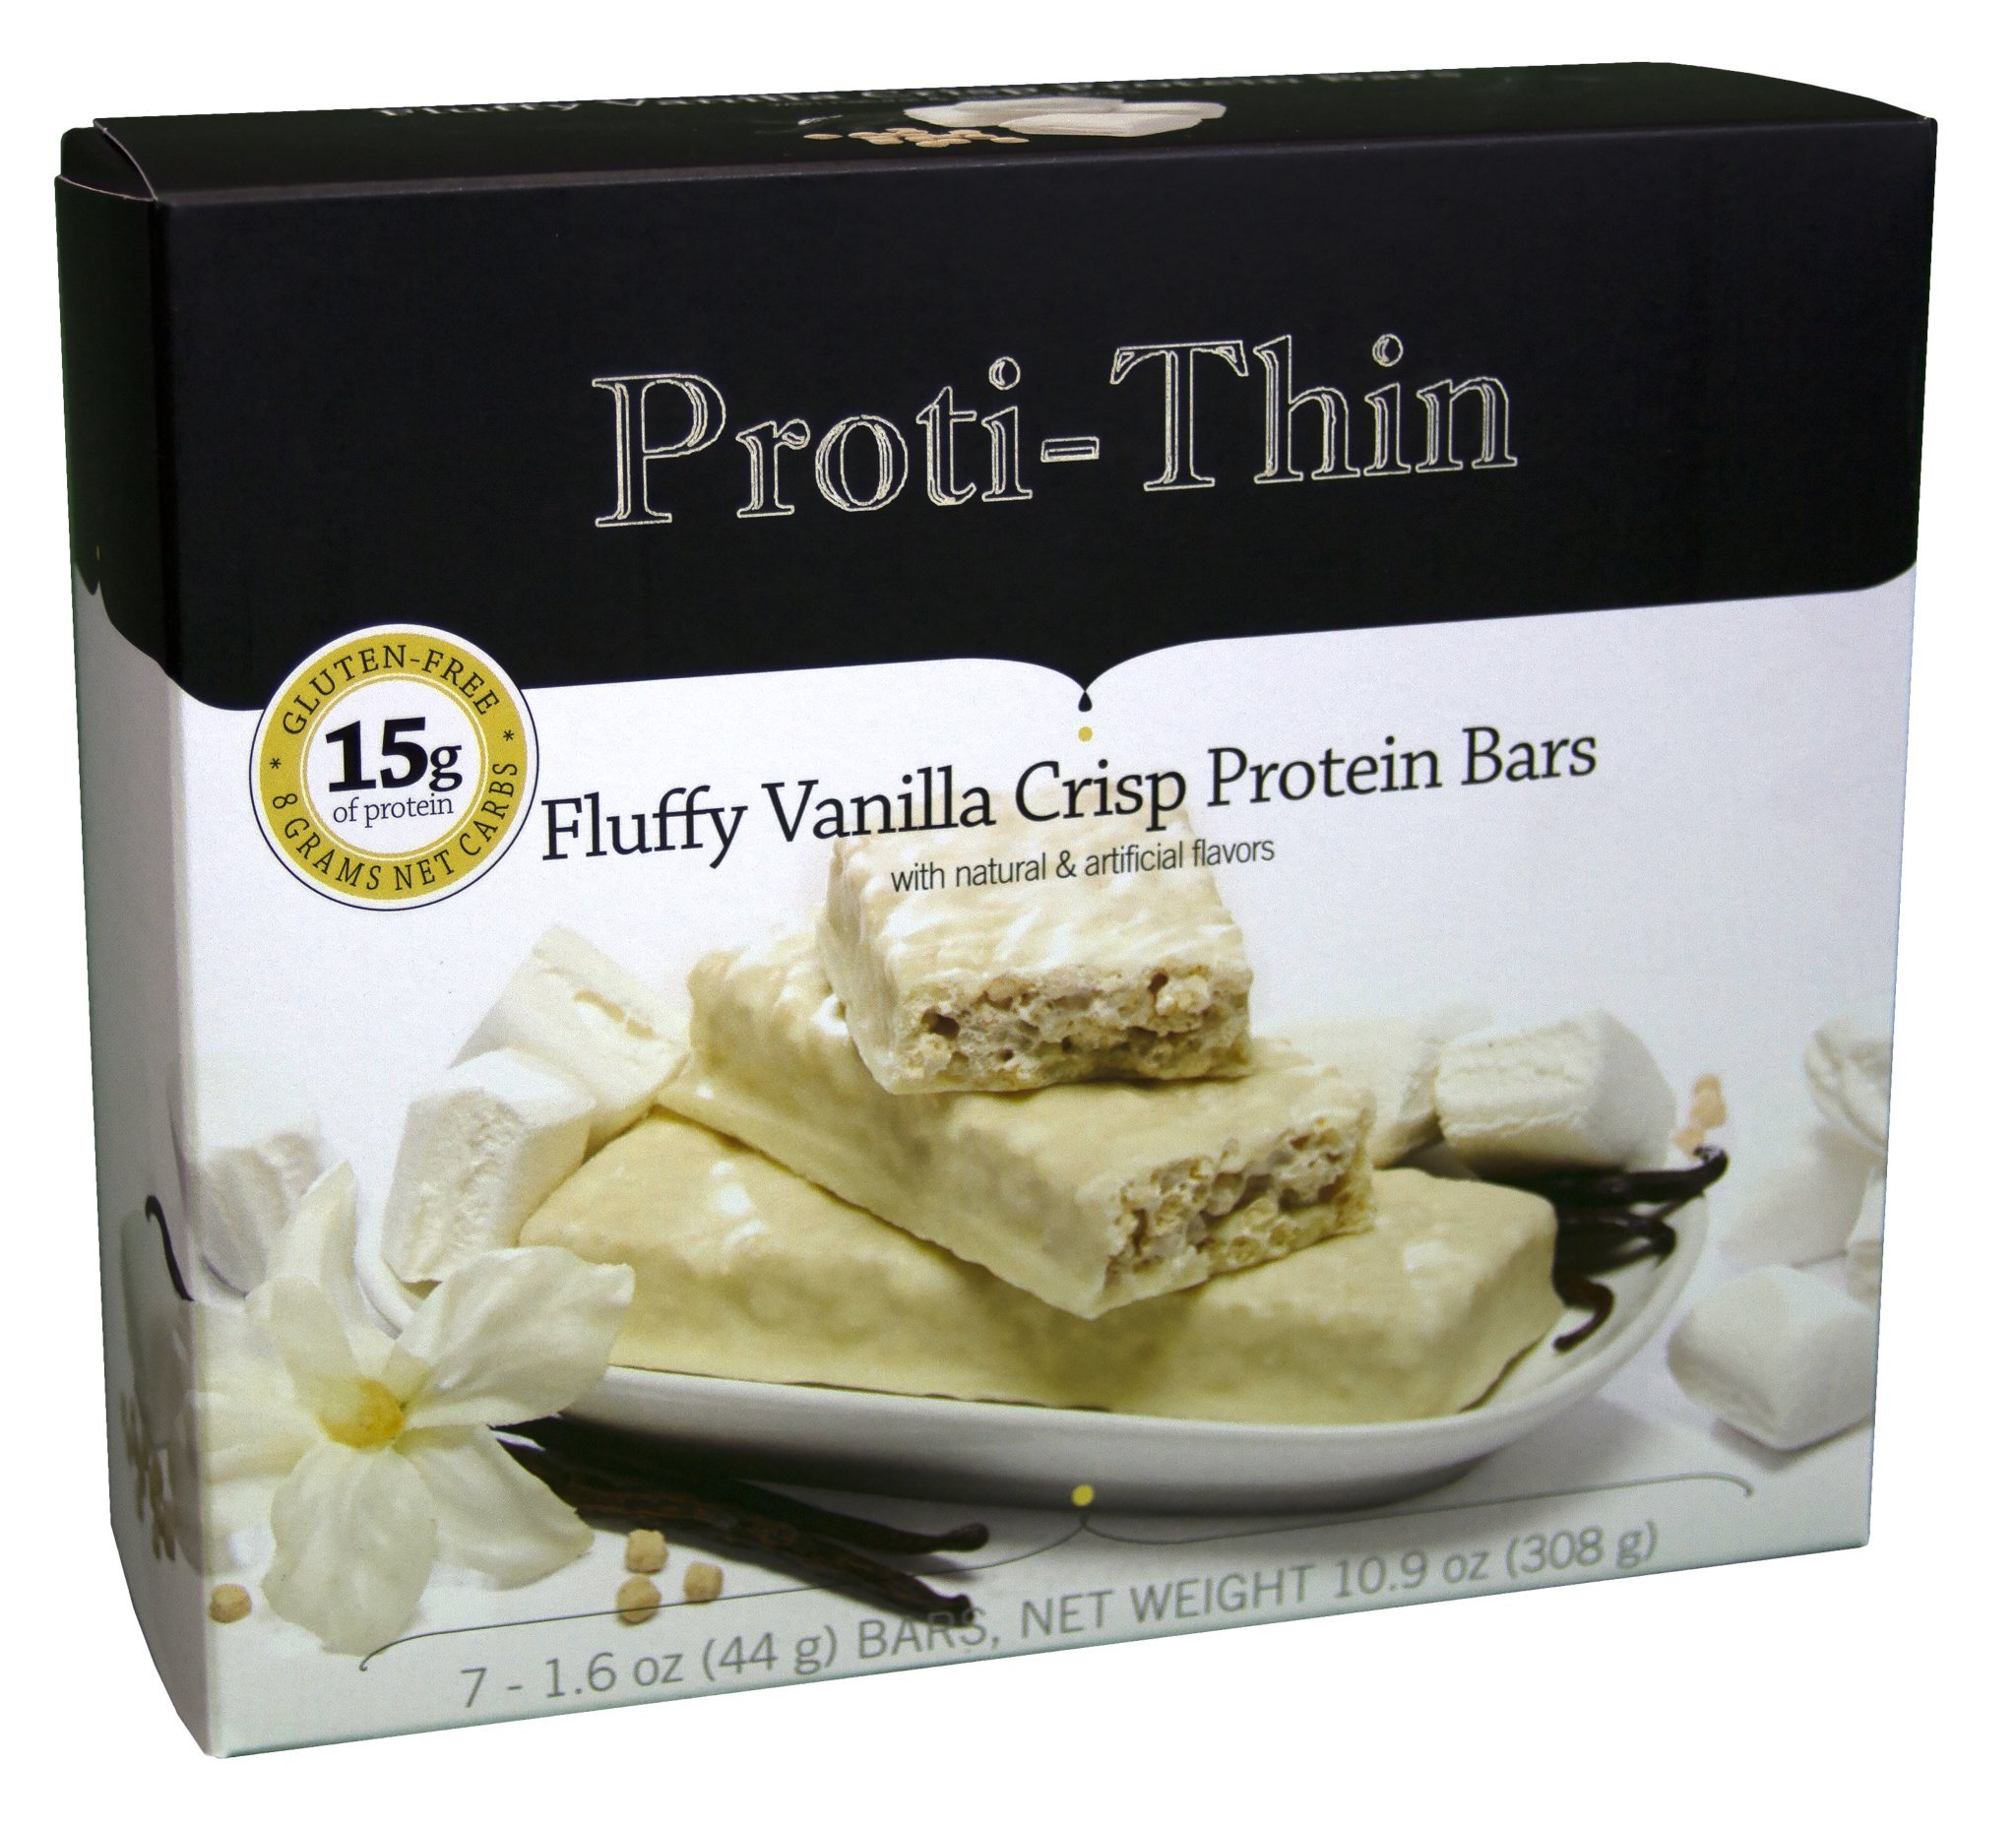 Proti-Thin - Fluffy Vanilla Crisp - Protein Bar - Ideal Protein Compatible - 15g Protein - Low Carb Diet Bar - High Fiber Snack Bar - Gluten Free (7/Box)